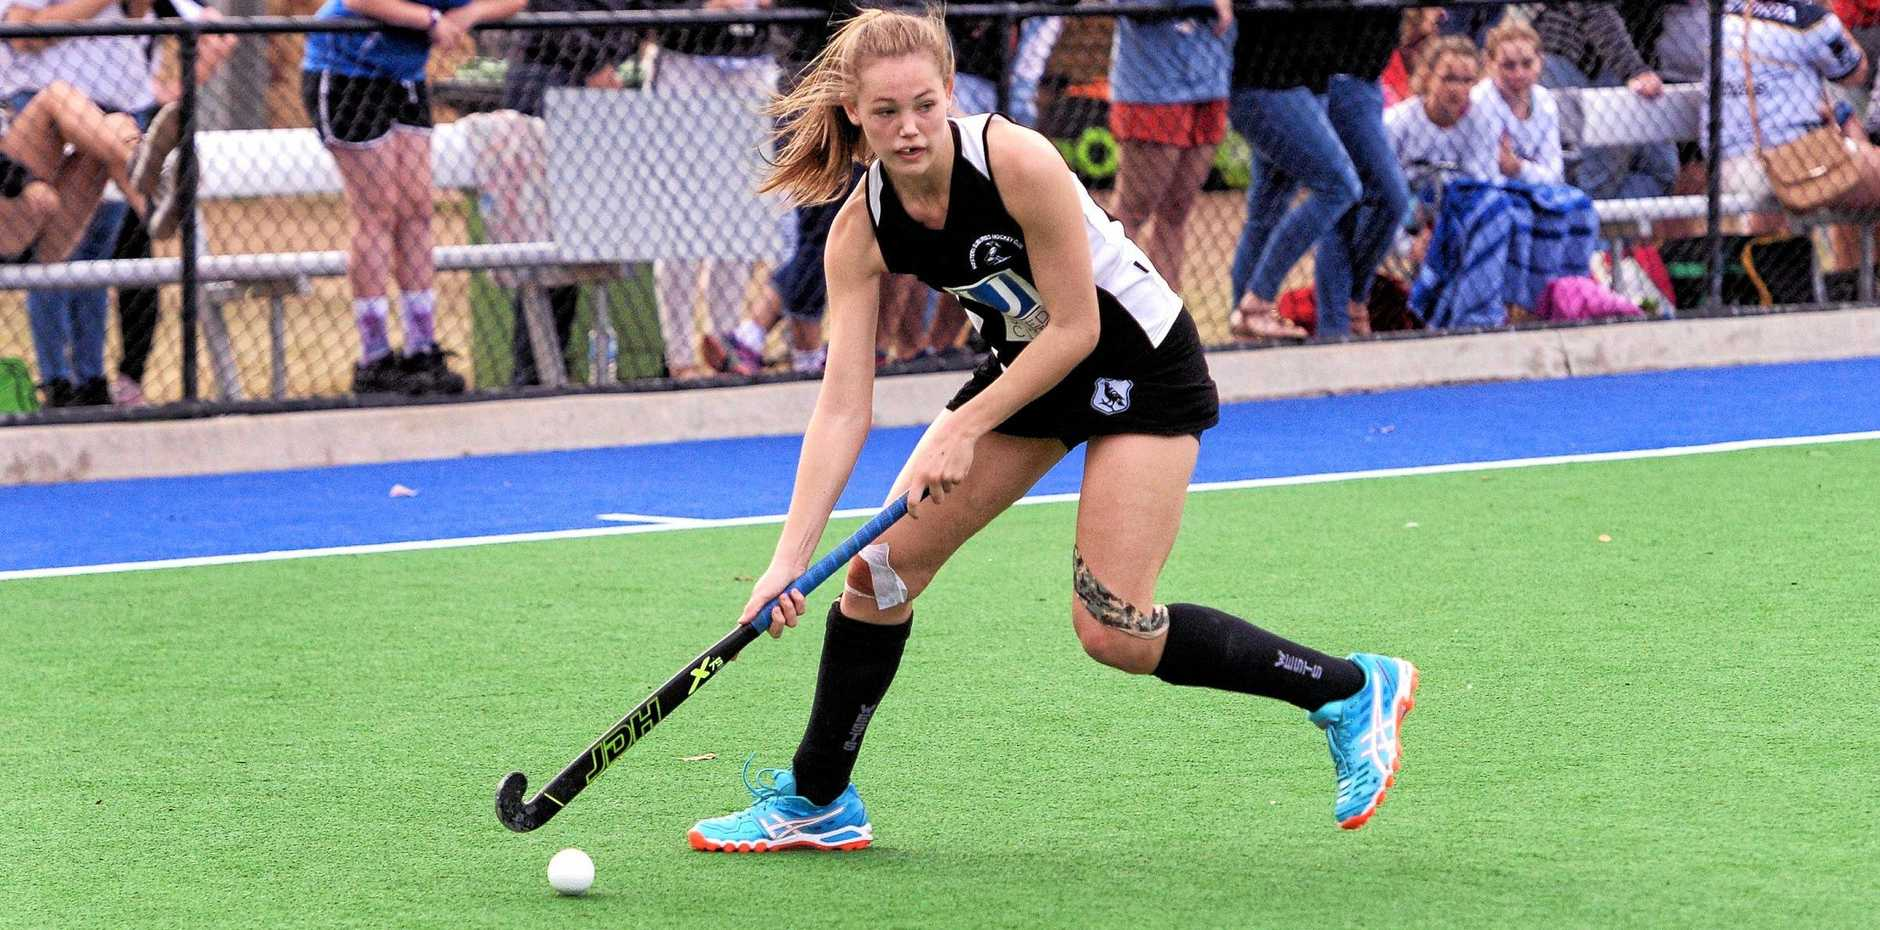 Exciting hockey prospect Jordn Office plans her next move playing for Wests in the Ipswich competition.